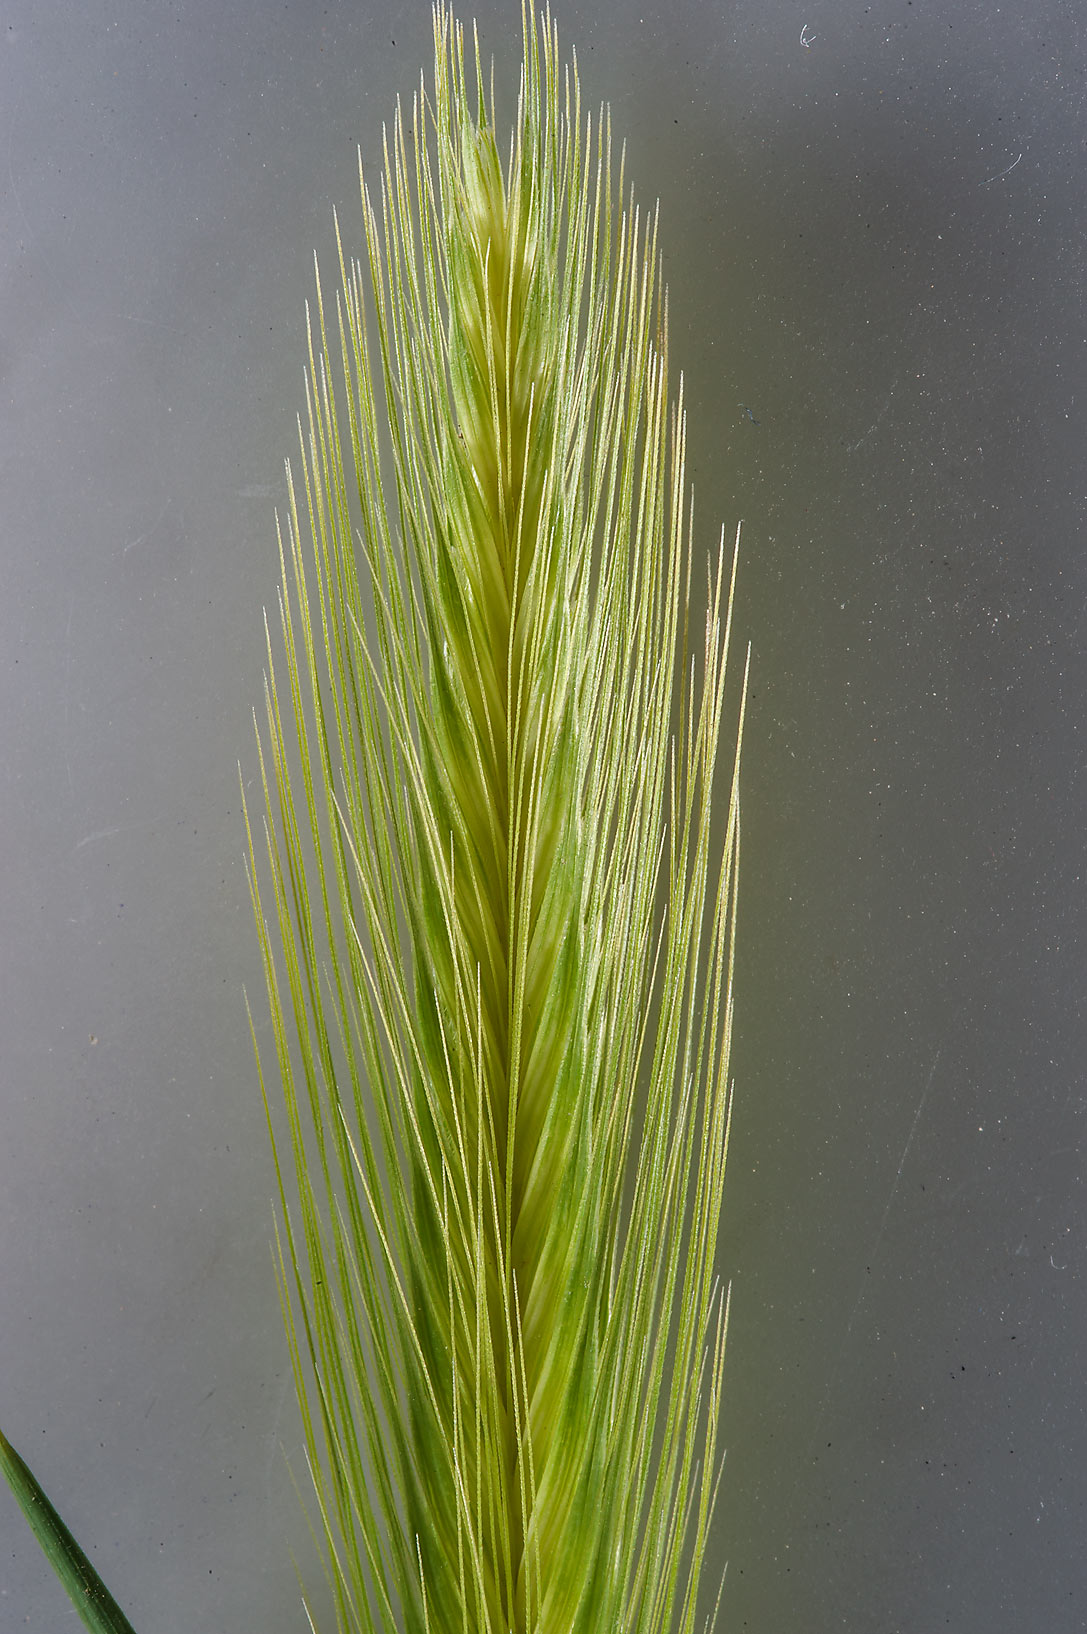 Spike of grass false barley (Hordeum murinum) in a depression in Al Harrarah. Qatar